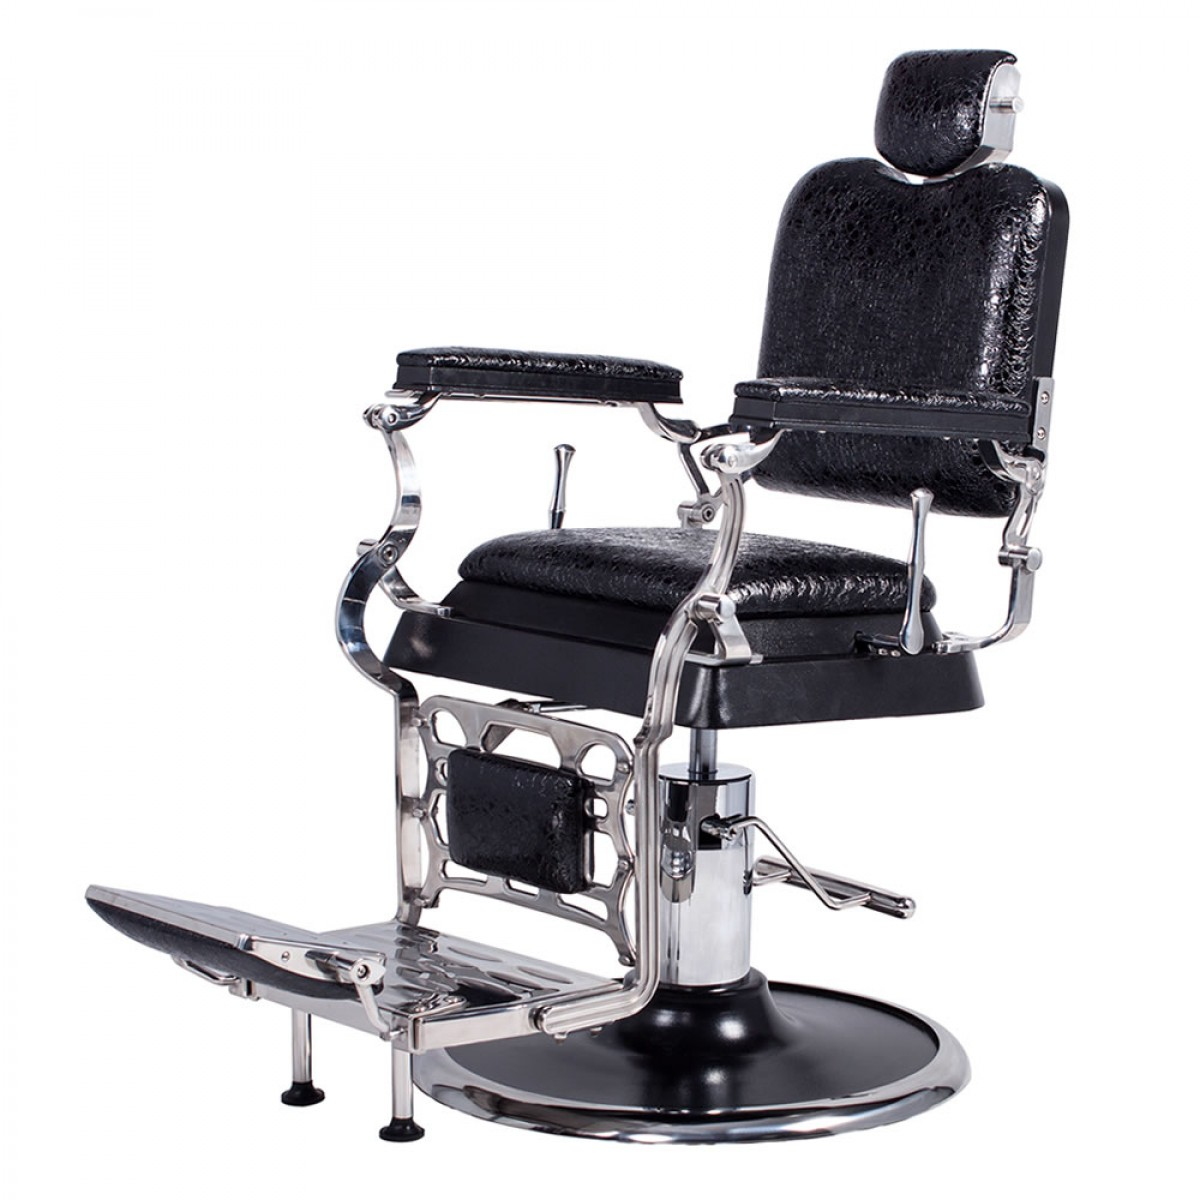 Antique Barber Chair For Sale Antique Barber Chair Value